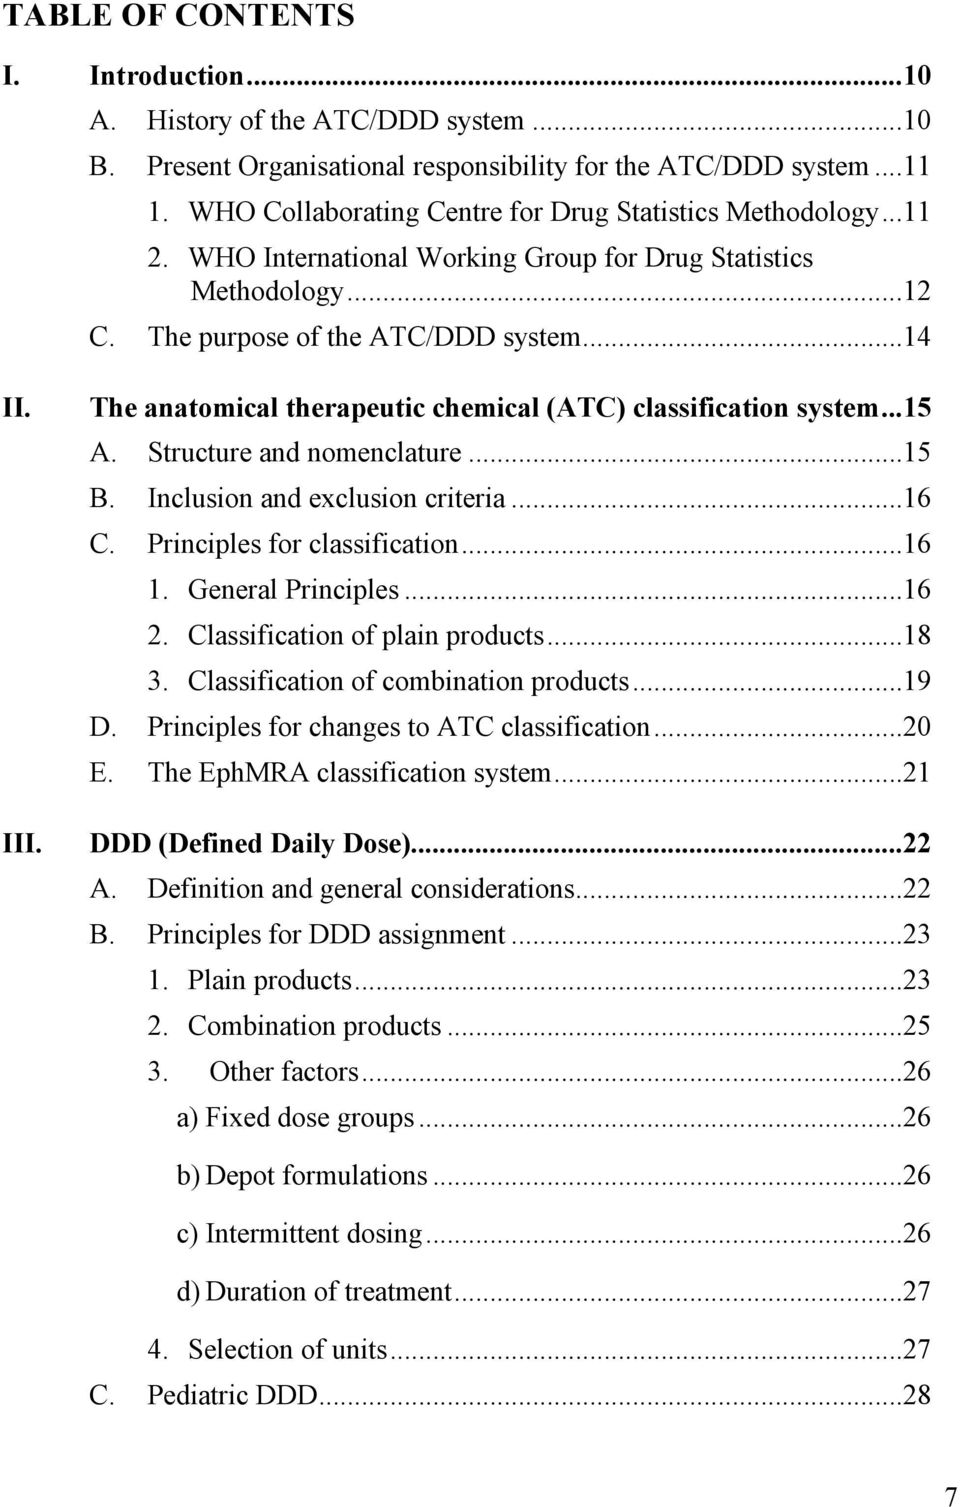 The anatomical therapeutic chemical (ATC) classification system... 15 A. Structure and nomenclature... 15 B. Inclusion and exclusion criteria... 16 C. Principles for classification... 16 1.